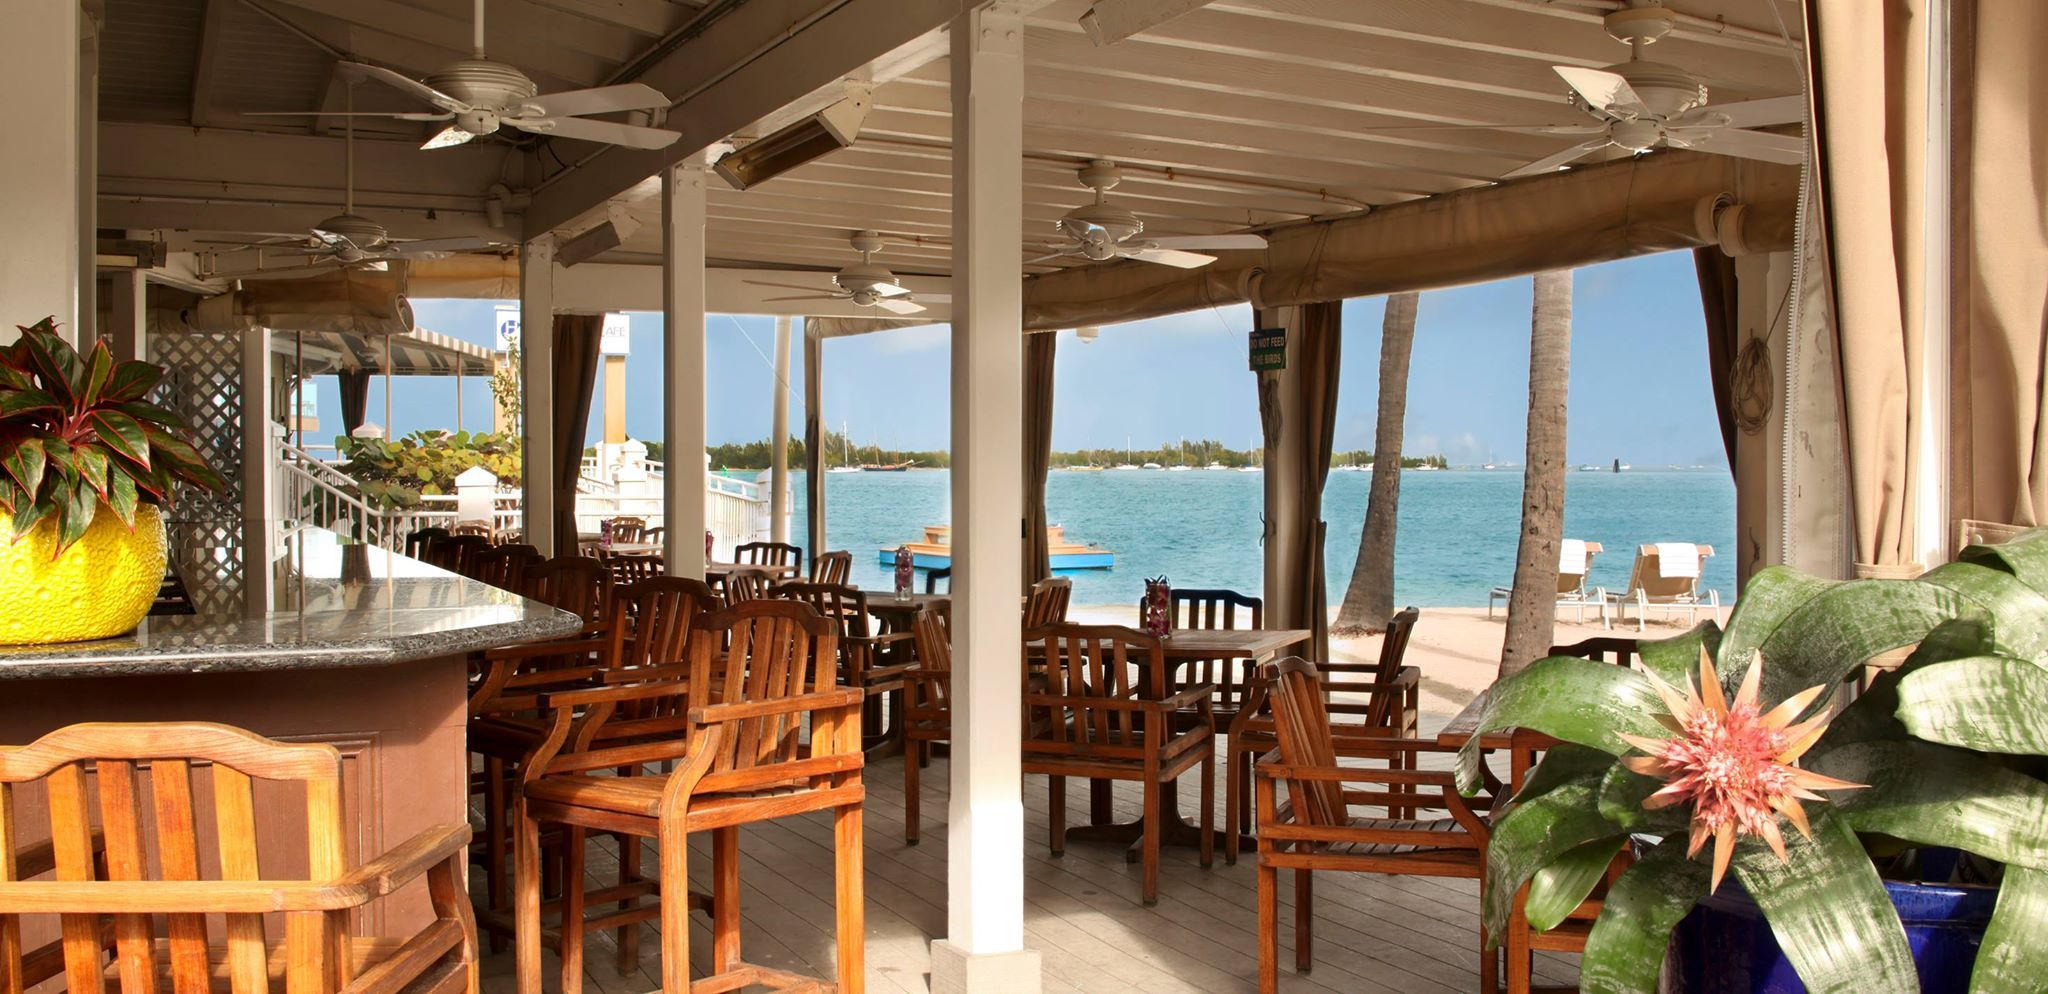 Ocean View Restaurants In Key West One Duval At The Pier House Resort